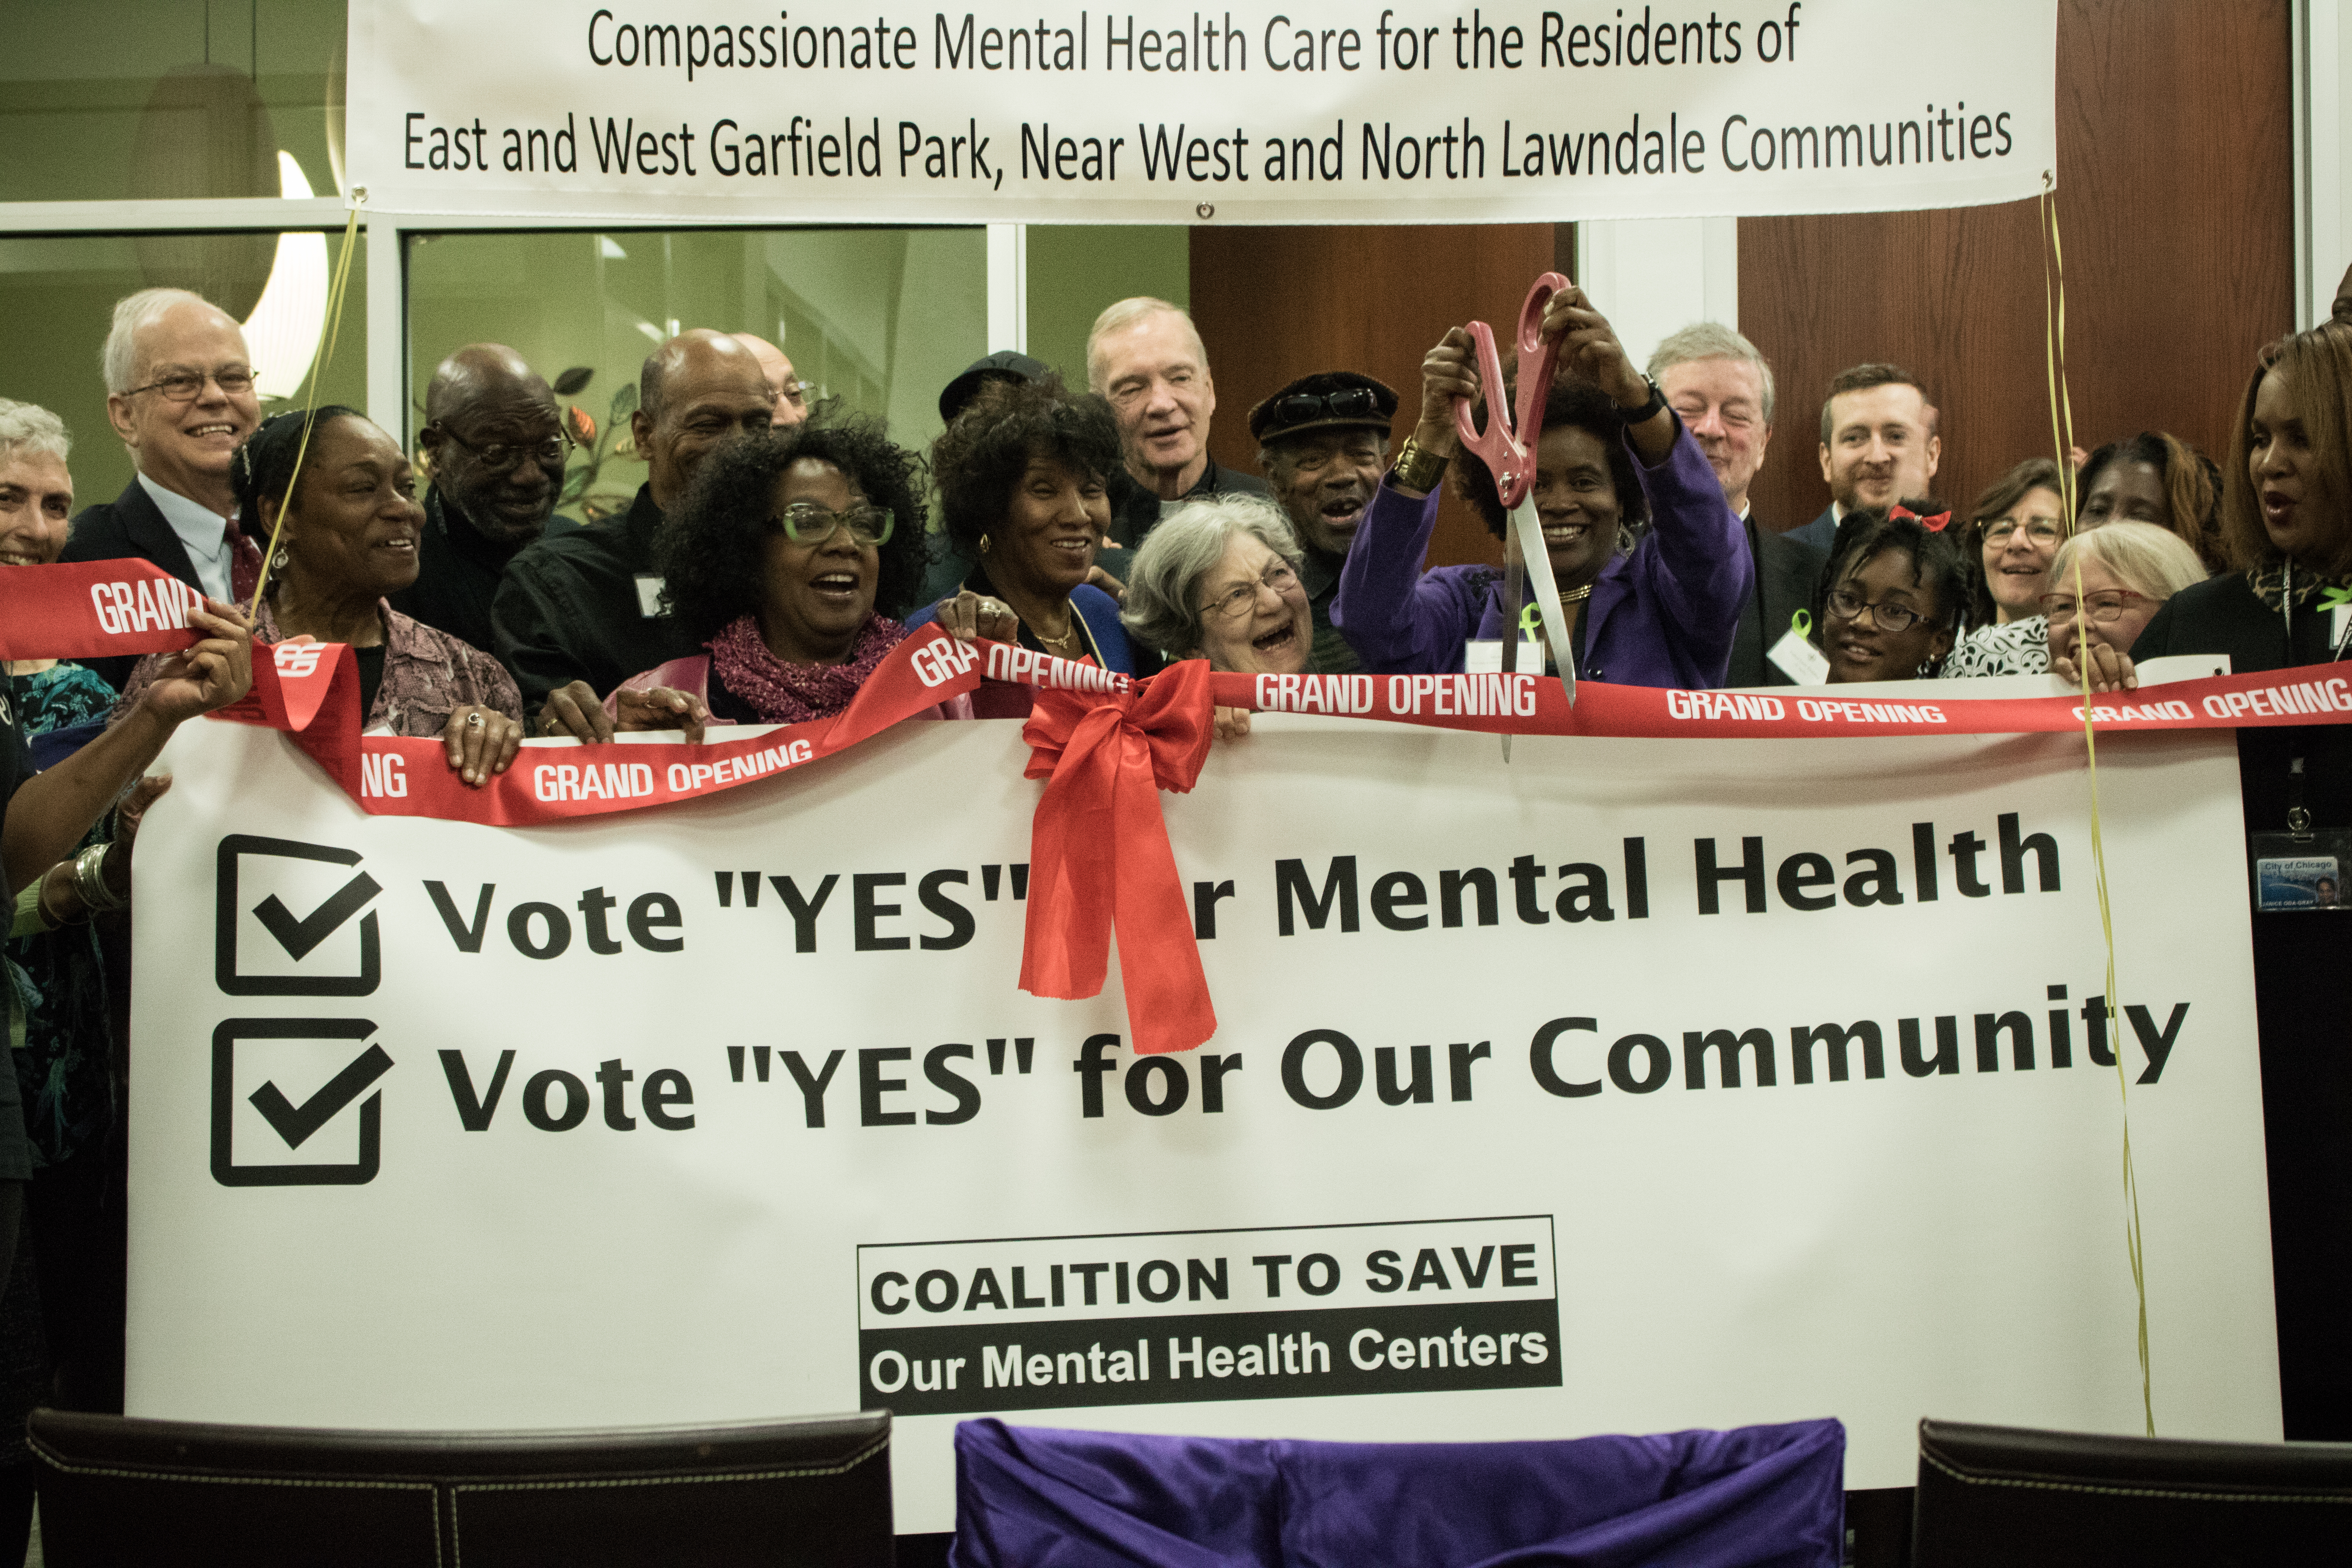 Community organizers celebrate the grand opening of a new mental health clinic on the West Side.